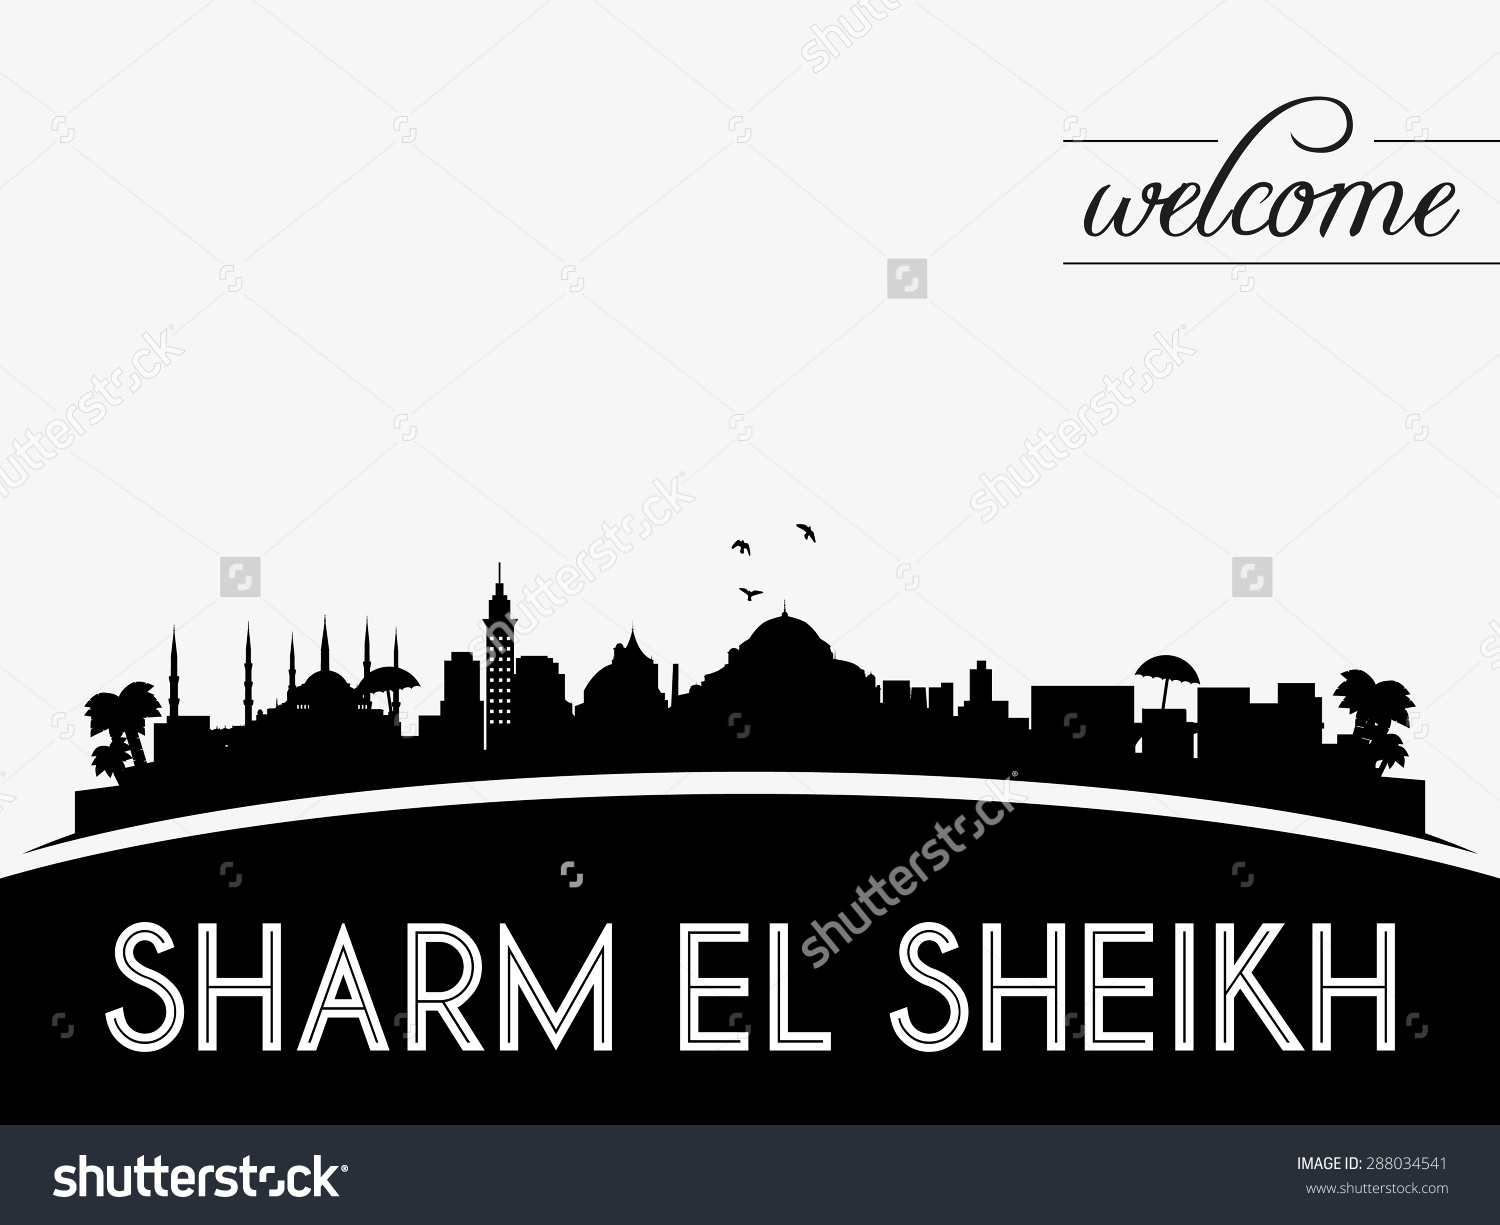 Sharm El Sheikh Skyline Silhouette Black Stock Vector 288034541.